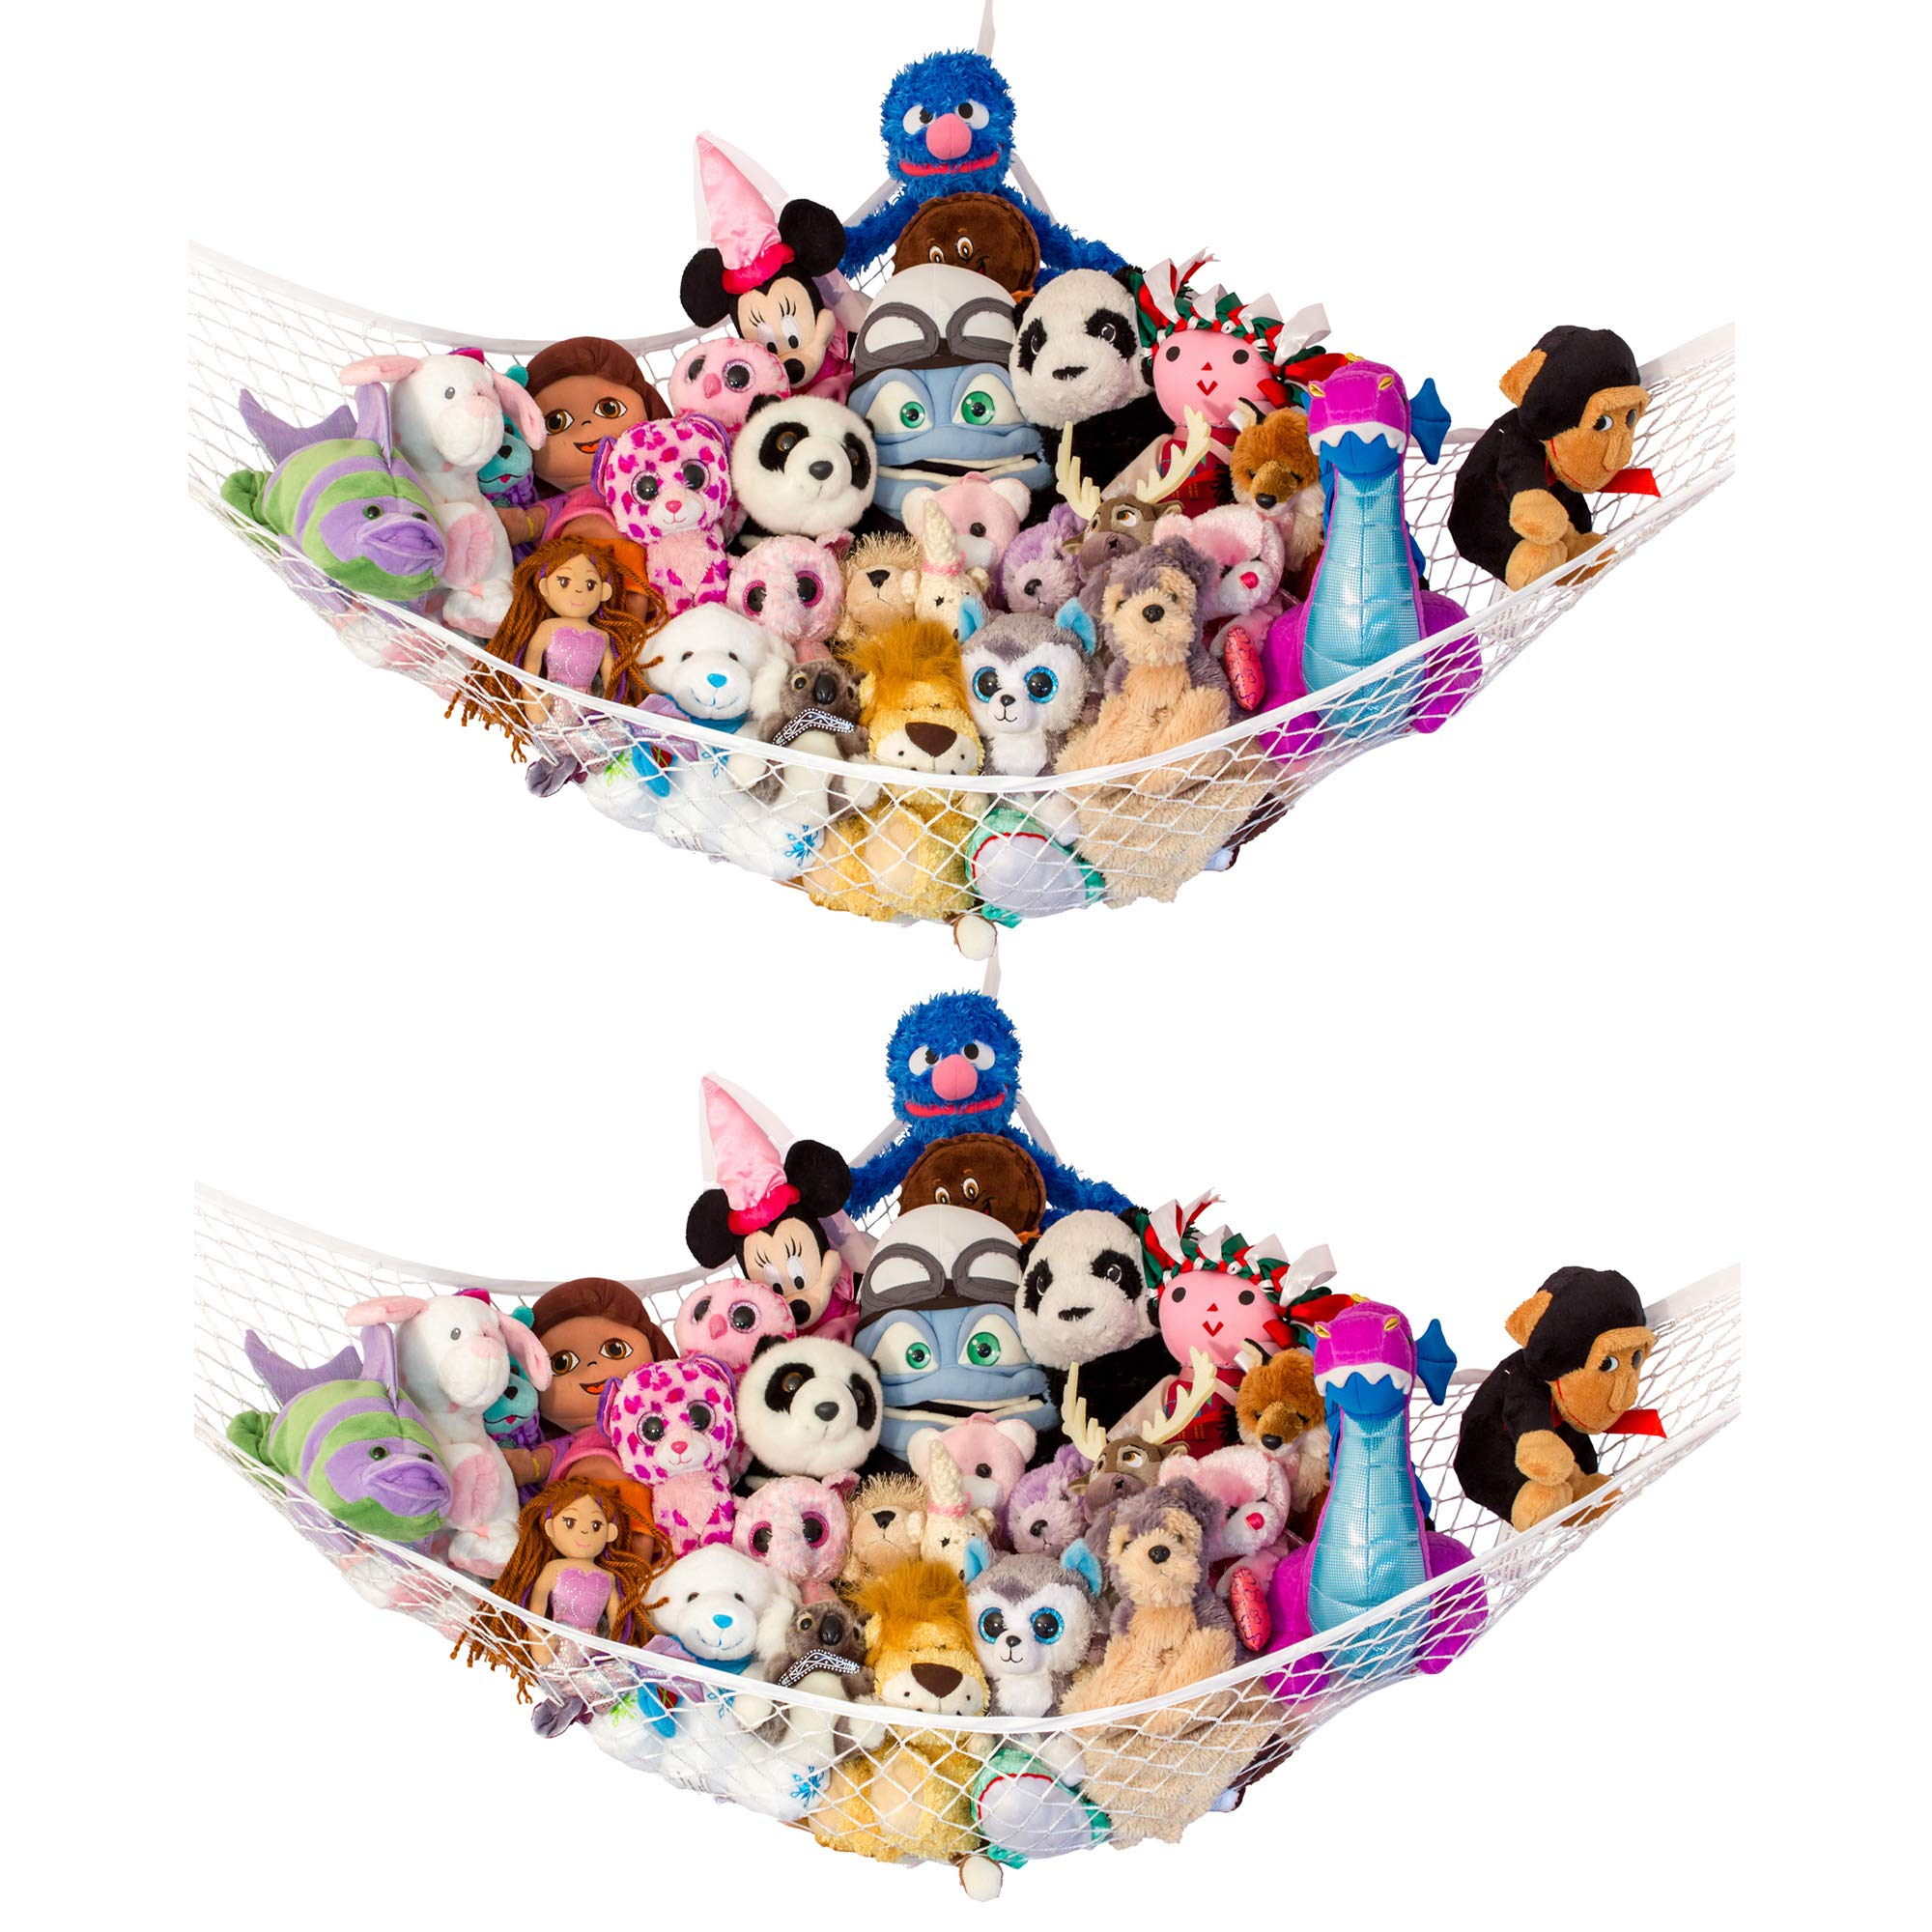 Lillys Love Stuffed Animal Storage Hammock - Large Pack 2 ''STUFFIE PARTY HAMMOCK'' Large by by Lilly's Love